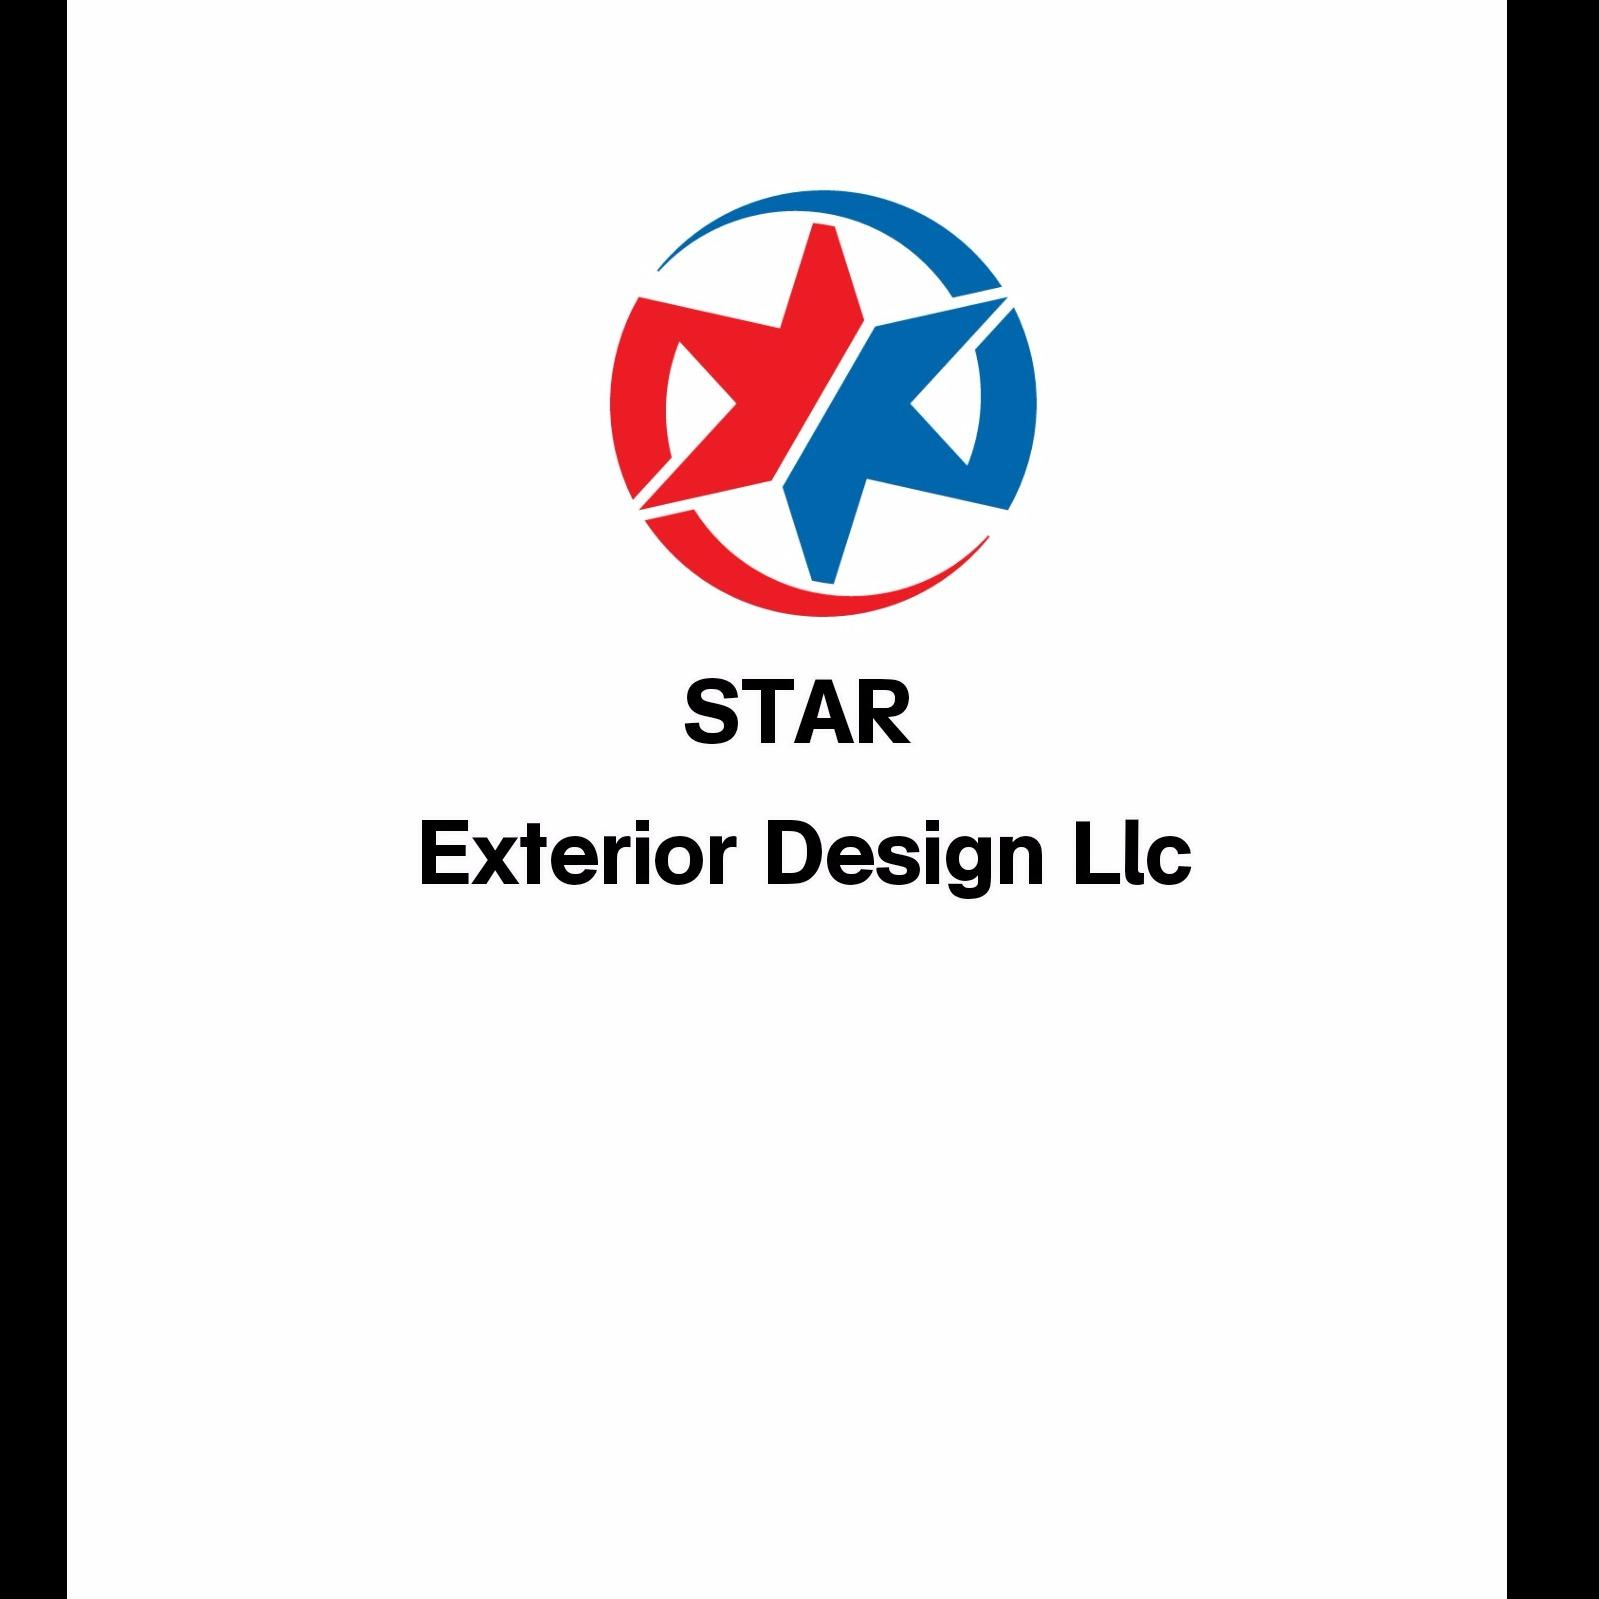 Star exterior design llc in irvington nj whitepages for Exterior design company